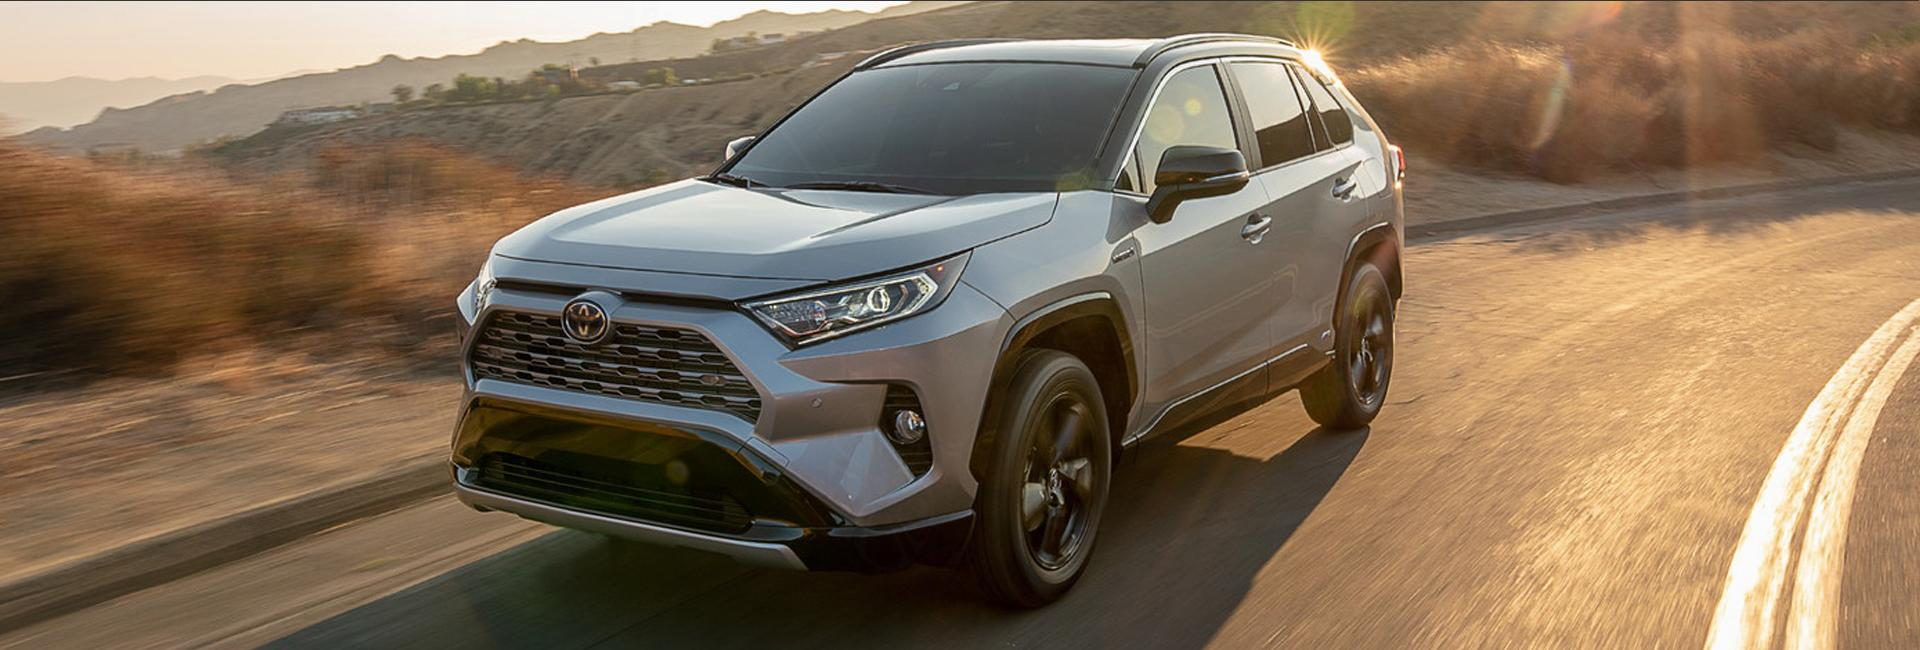 Angled view of a 2021 Toyota RAV4 in motion